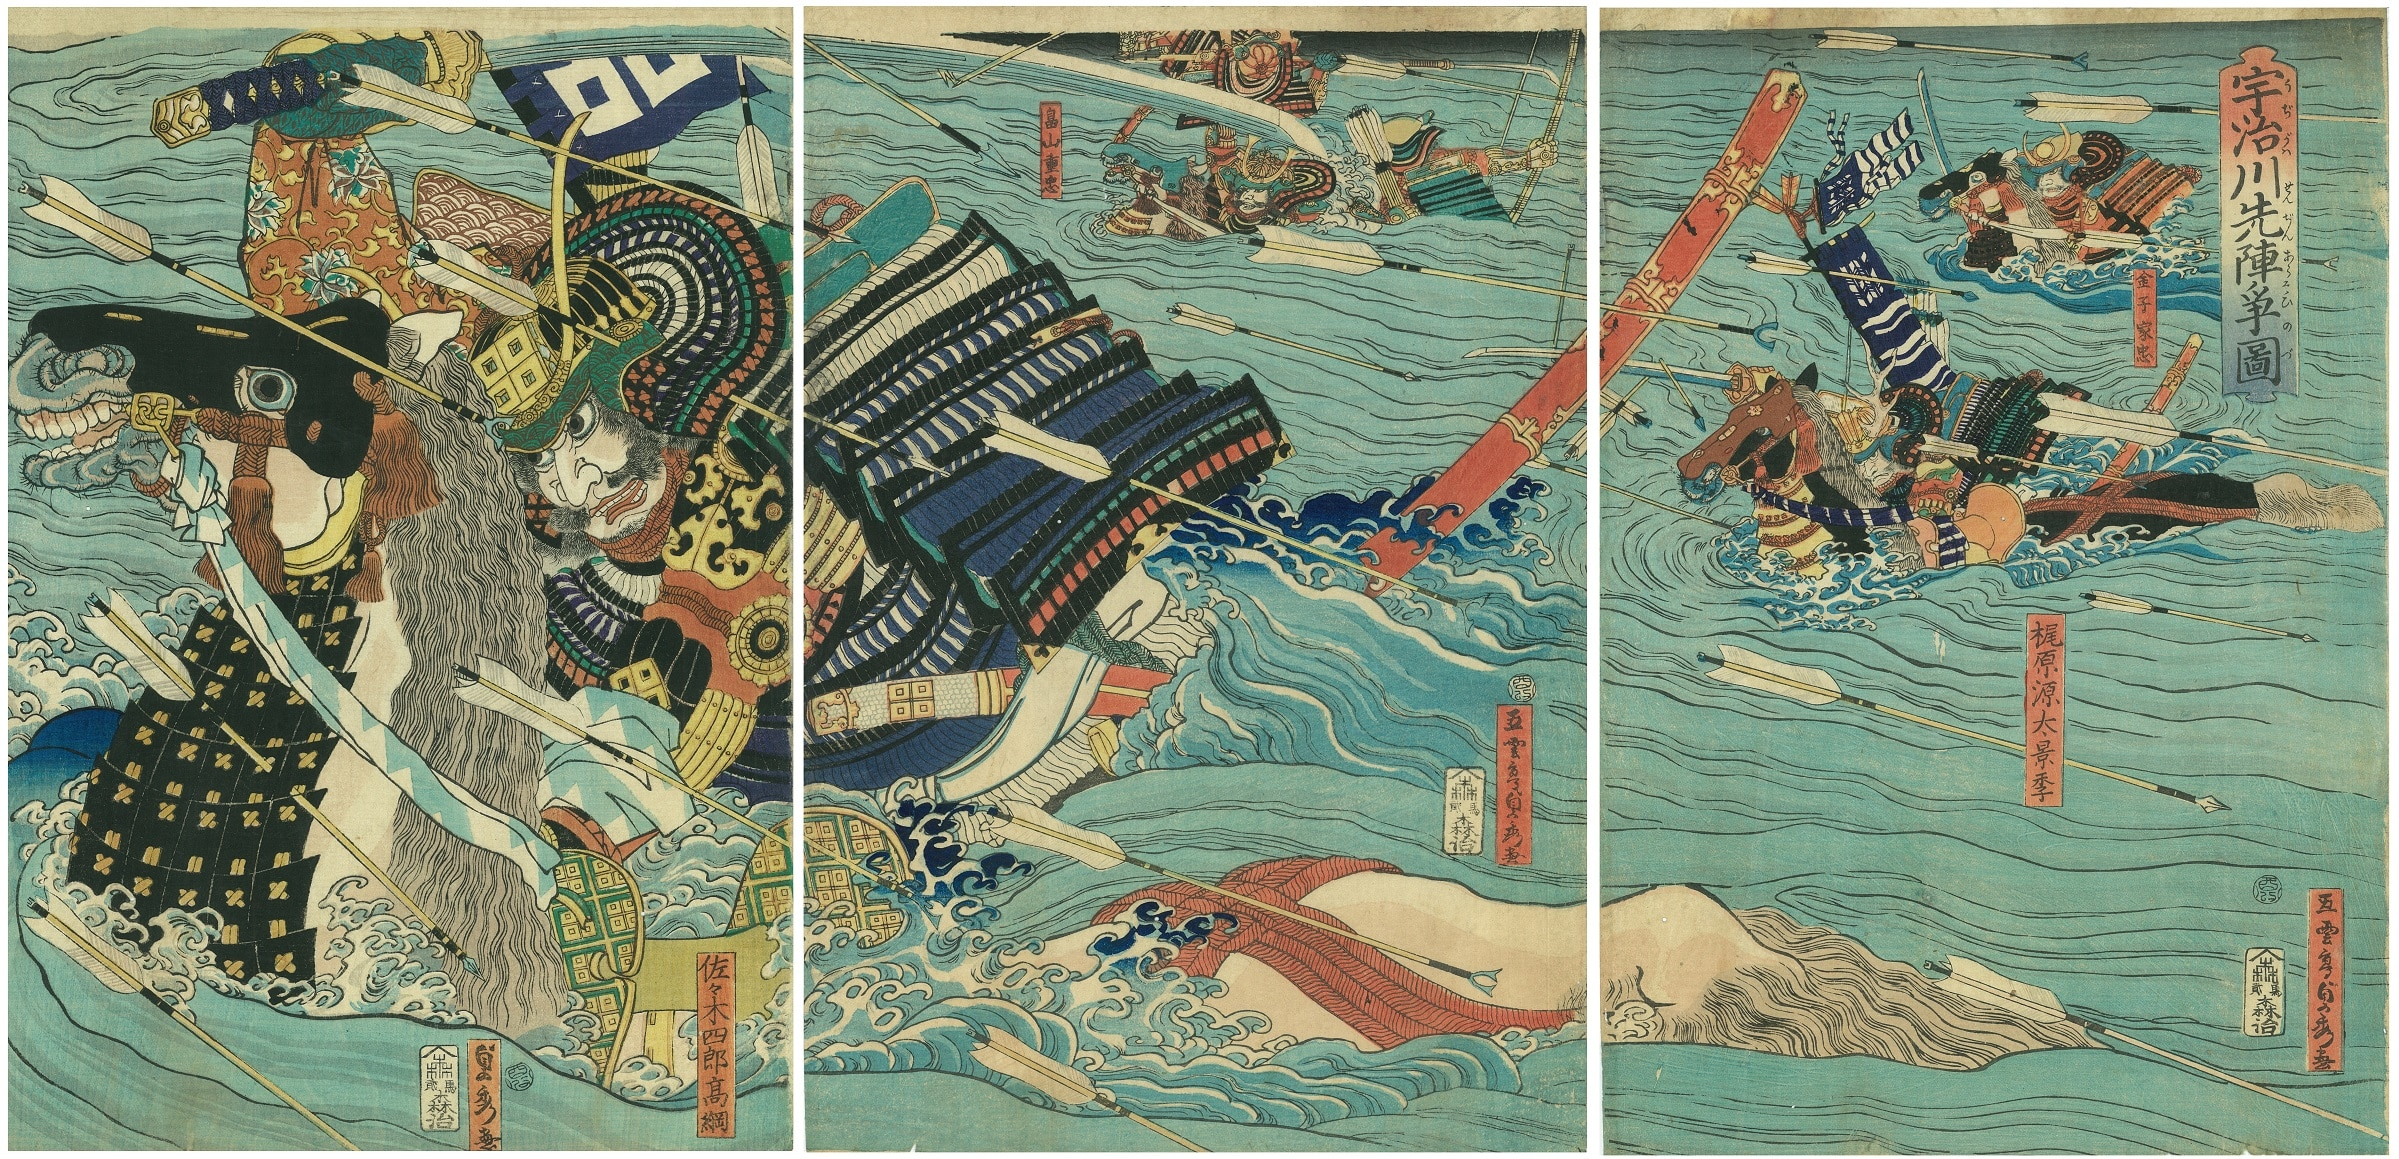 Competing to Be First at the Battle of the Uji River